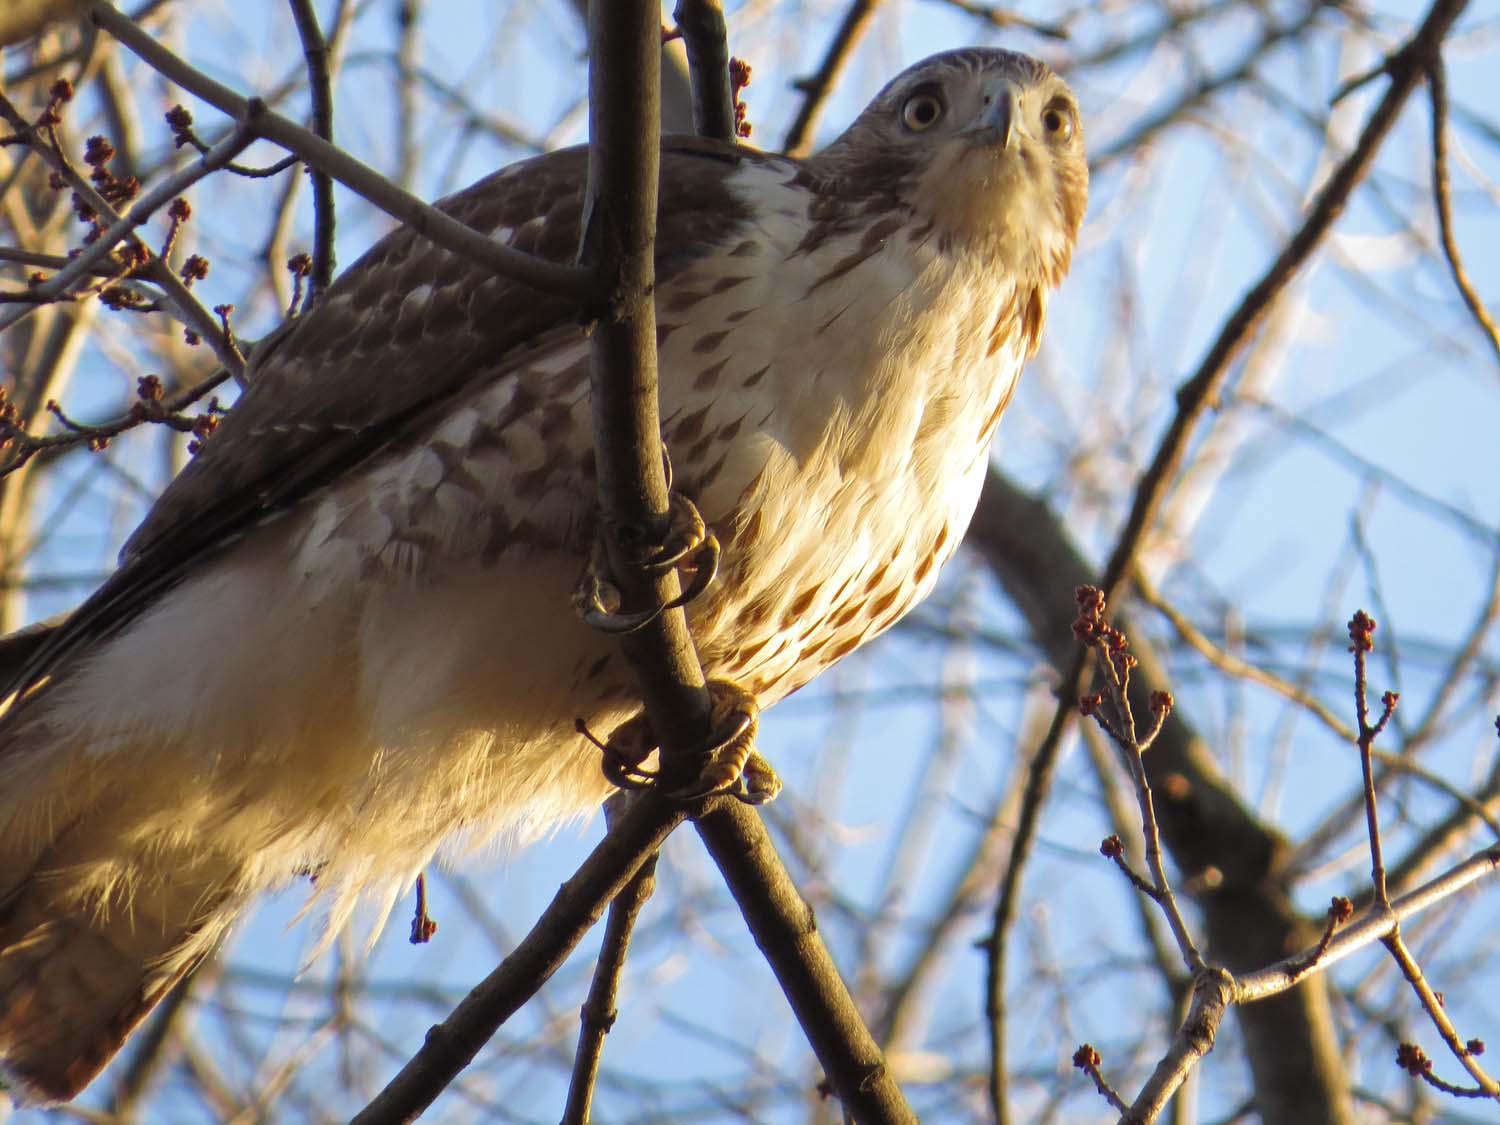 First-year red-tailed hawk, Jan. 30, 2017